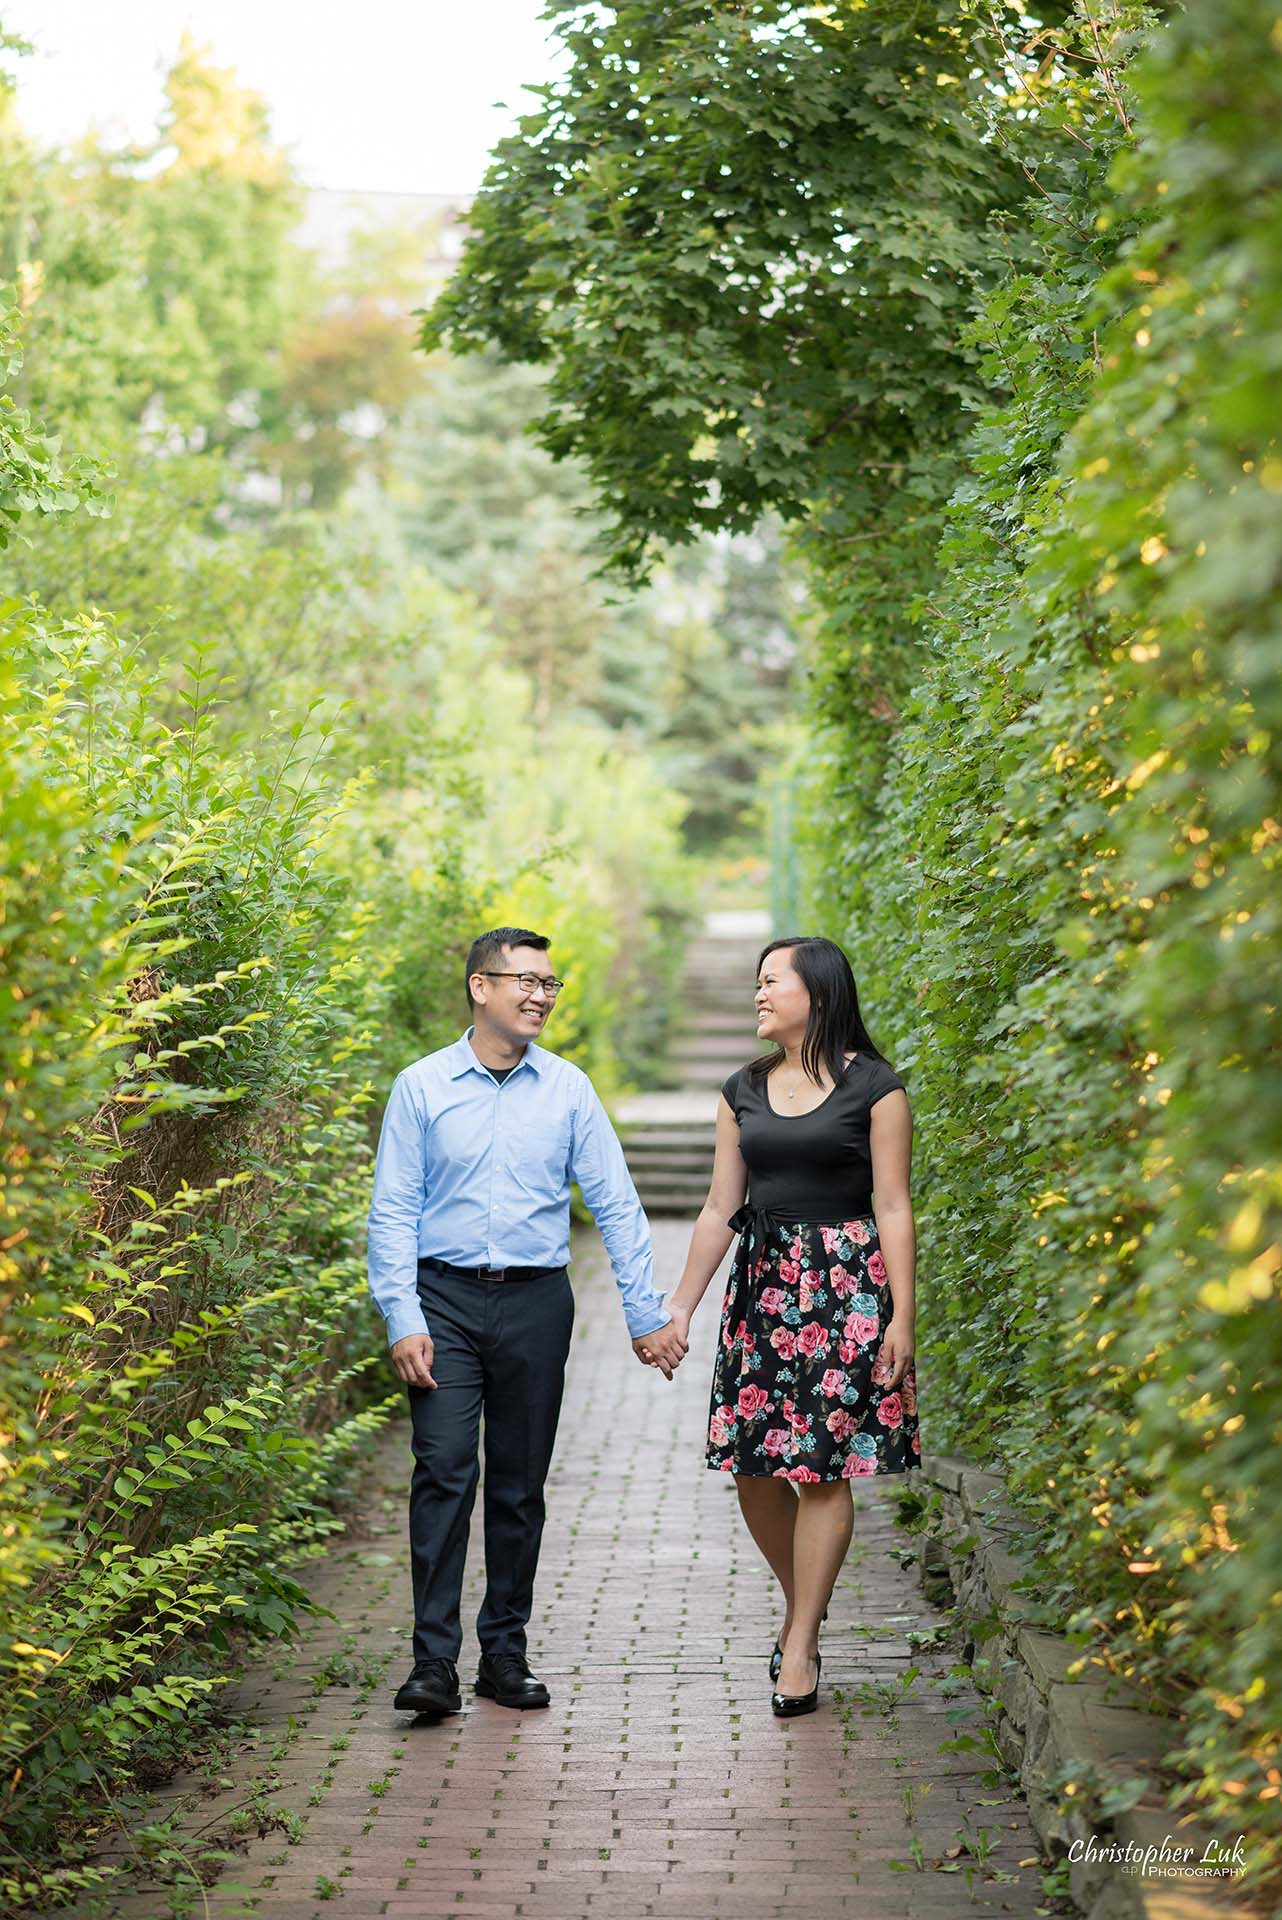 Christopher Luk Toronto Wedding Family Event Corporate Commercial Headshot Photographer Edith Jeff Engagement Session Alexander Muir Memorial Gardens Park MidTown Photo Location Natural Candid Photojournalistic - Bride and Groom Walking Forest Pathway Path Walking Together